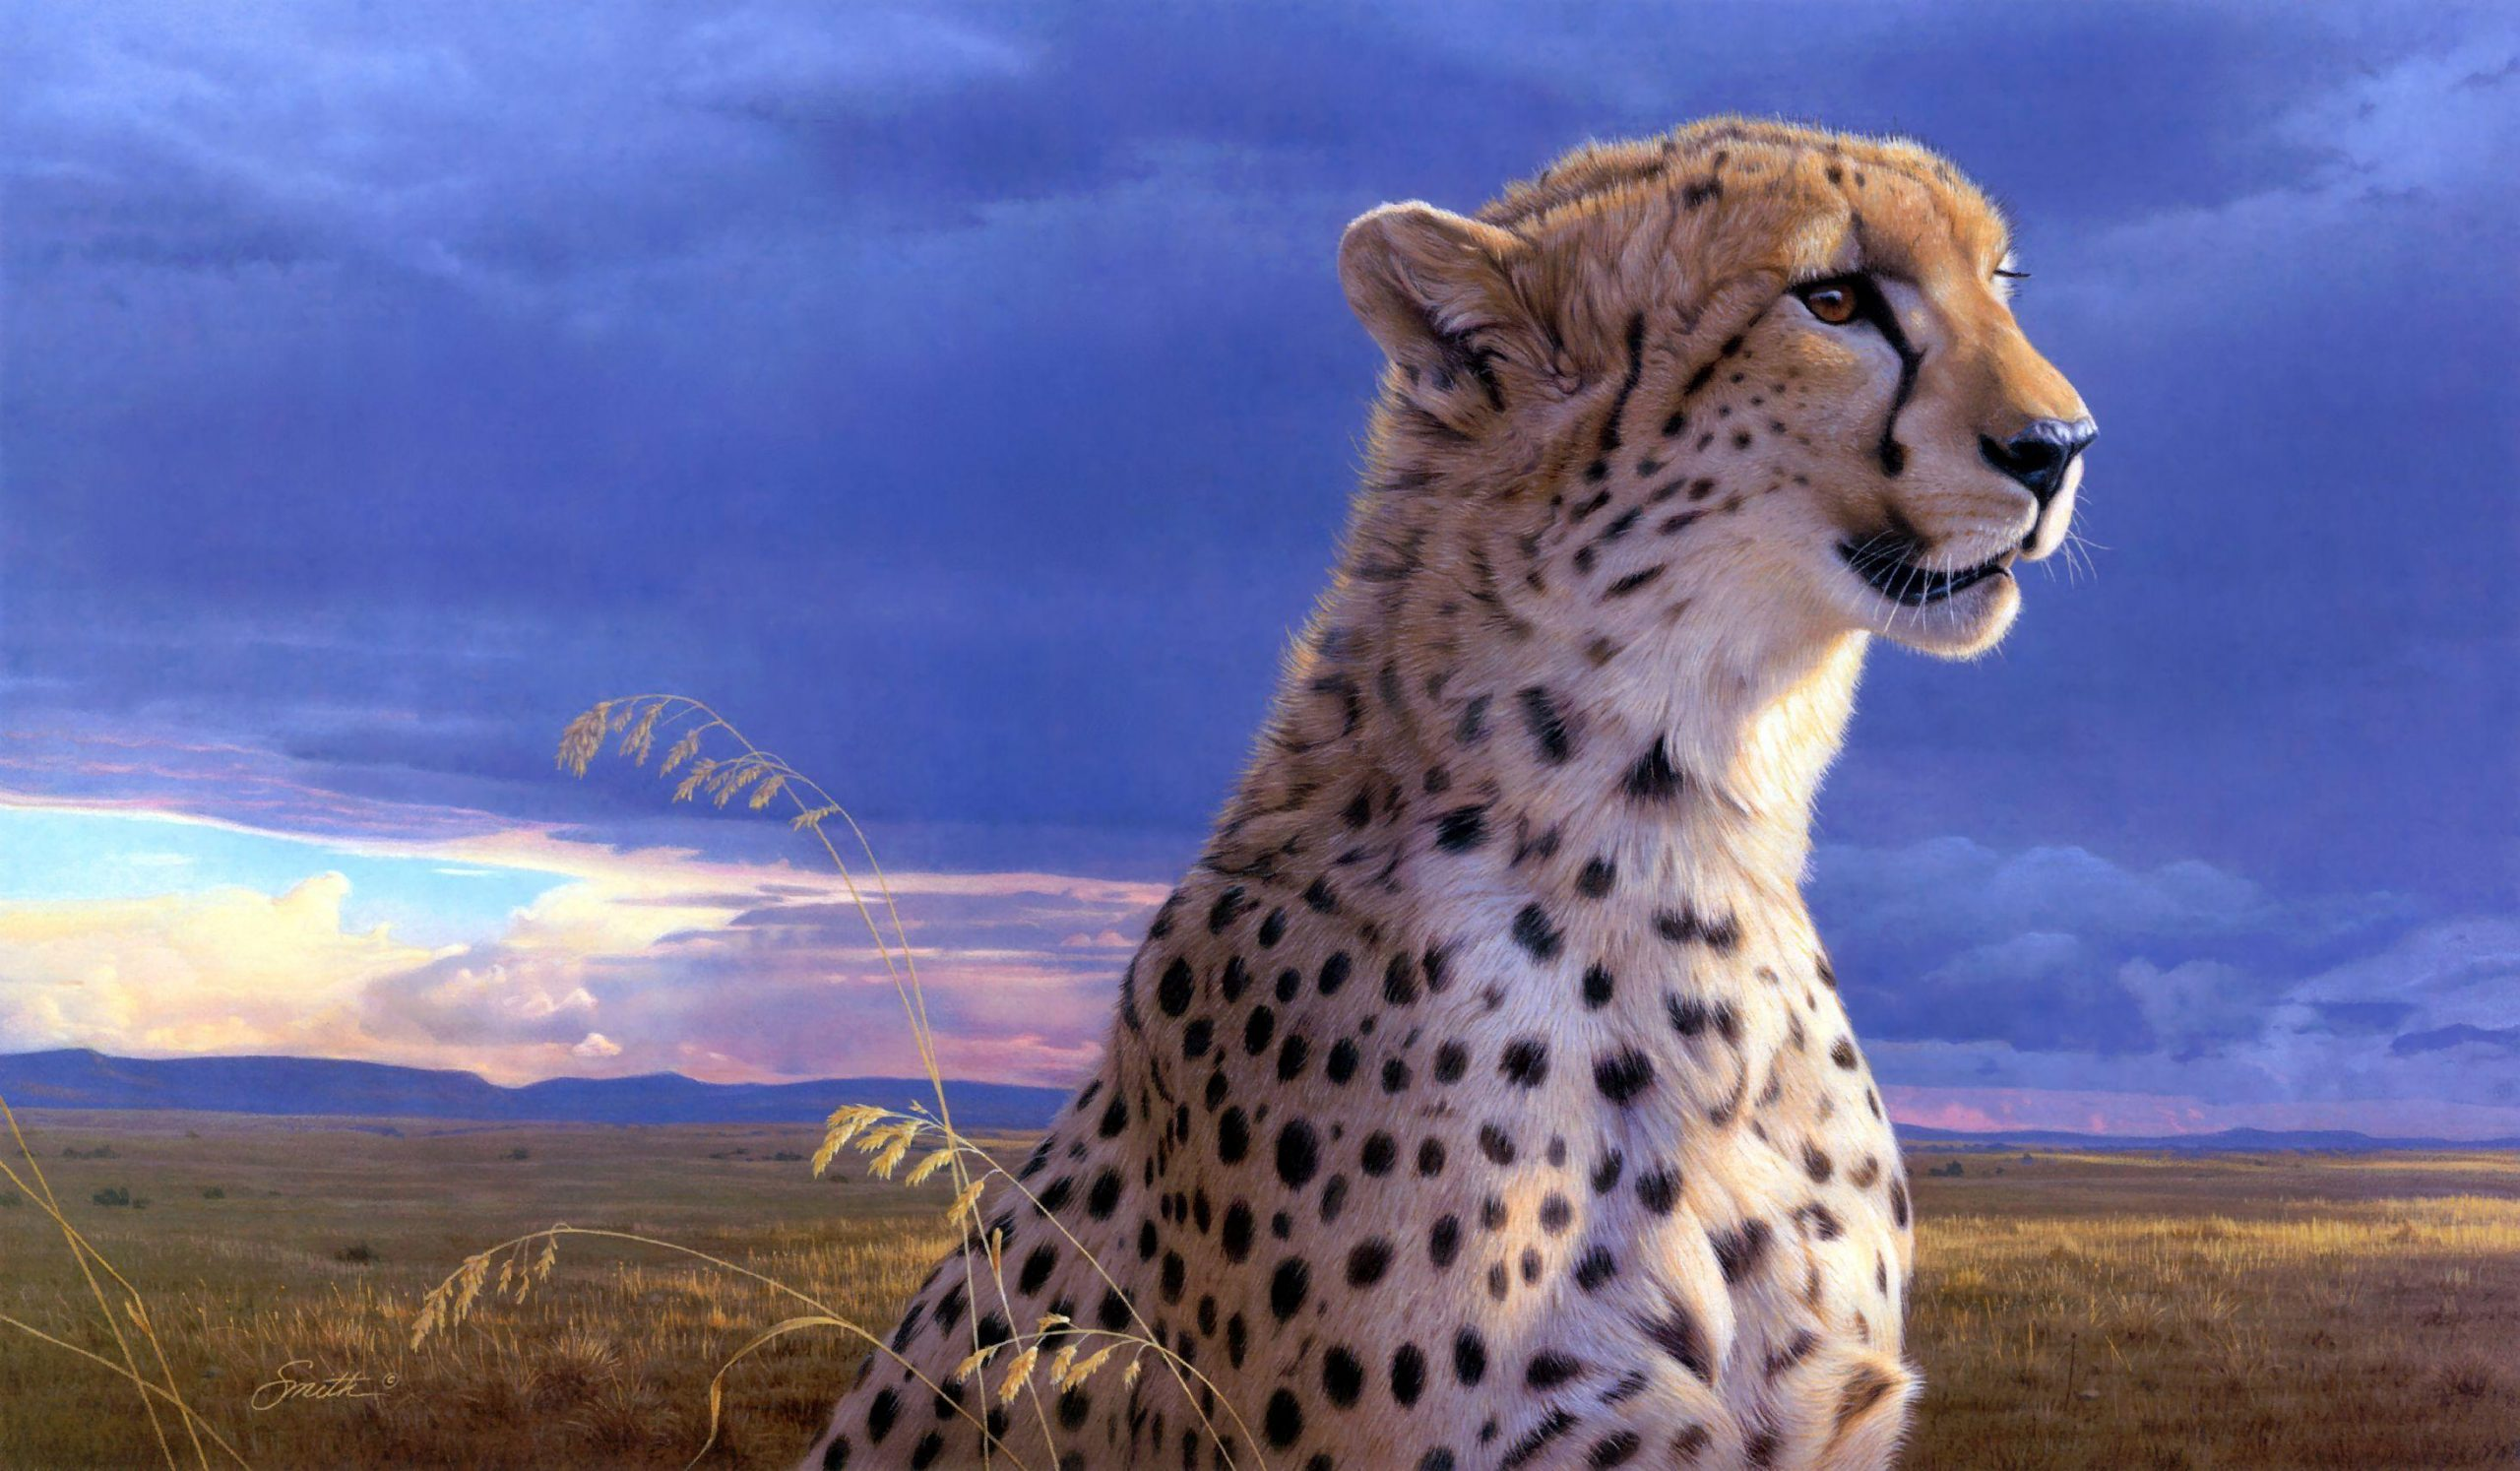 Cheetah Captions Quotes & Sayings